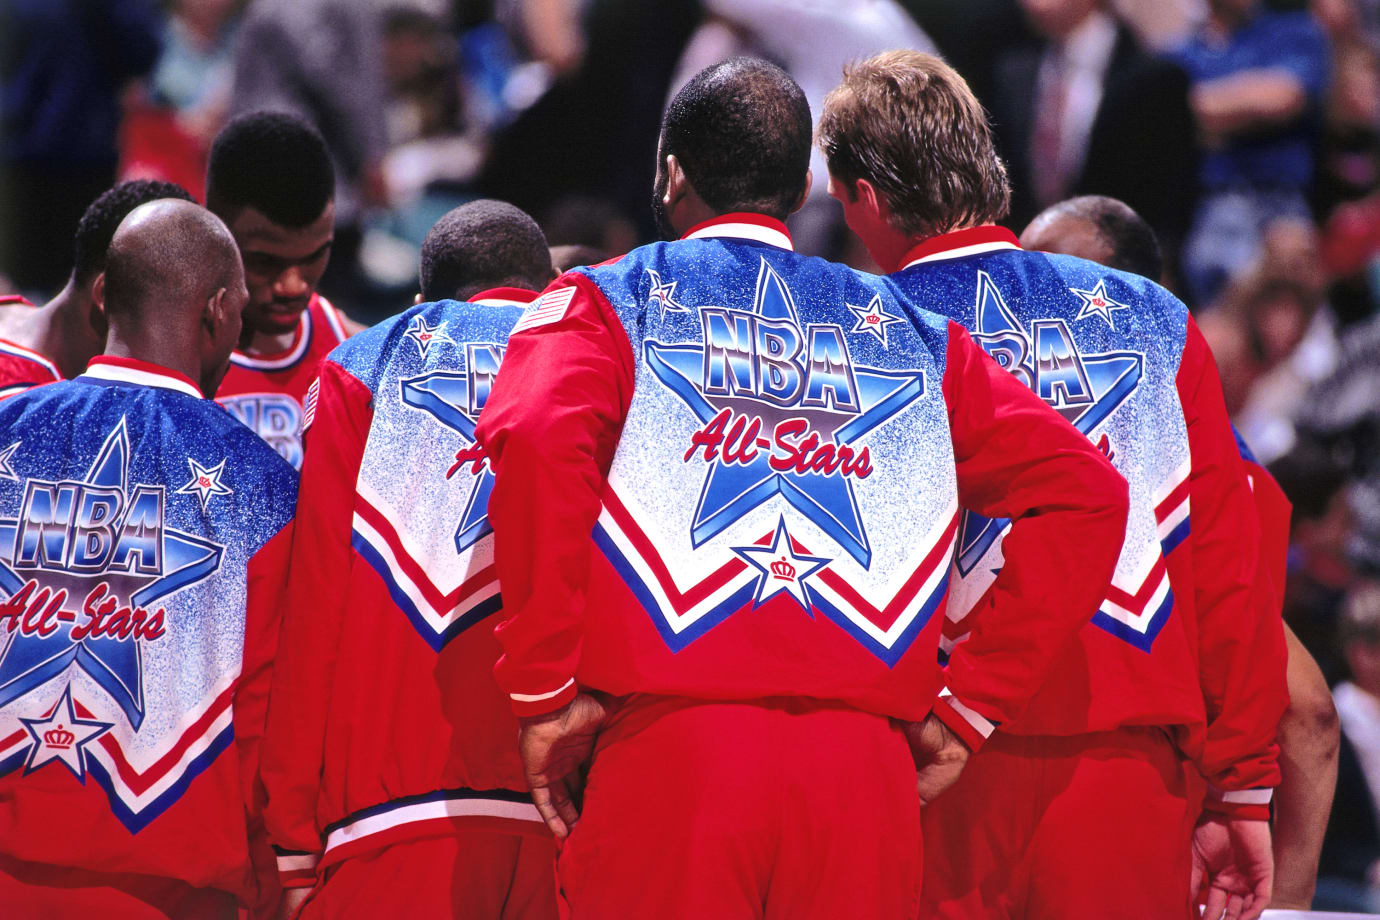 1991 NBA All-Star Game Image via Getty Andrew D. Bernstein. According to  Finish Line 76144752e